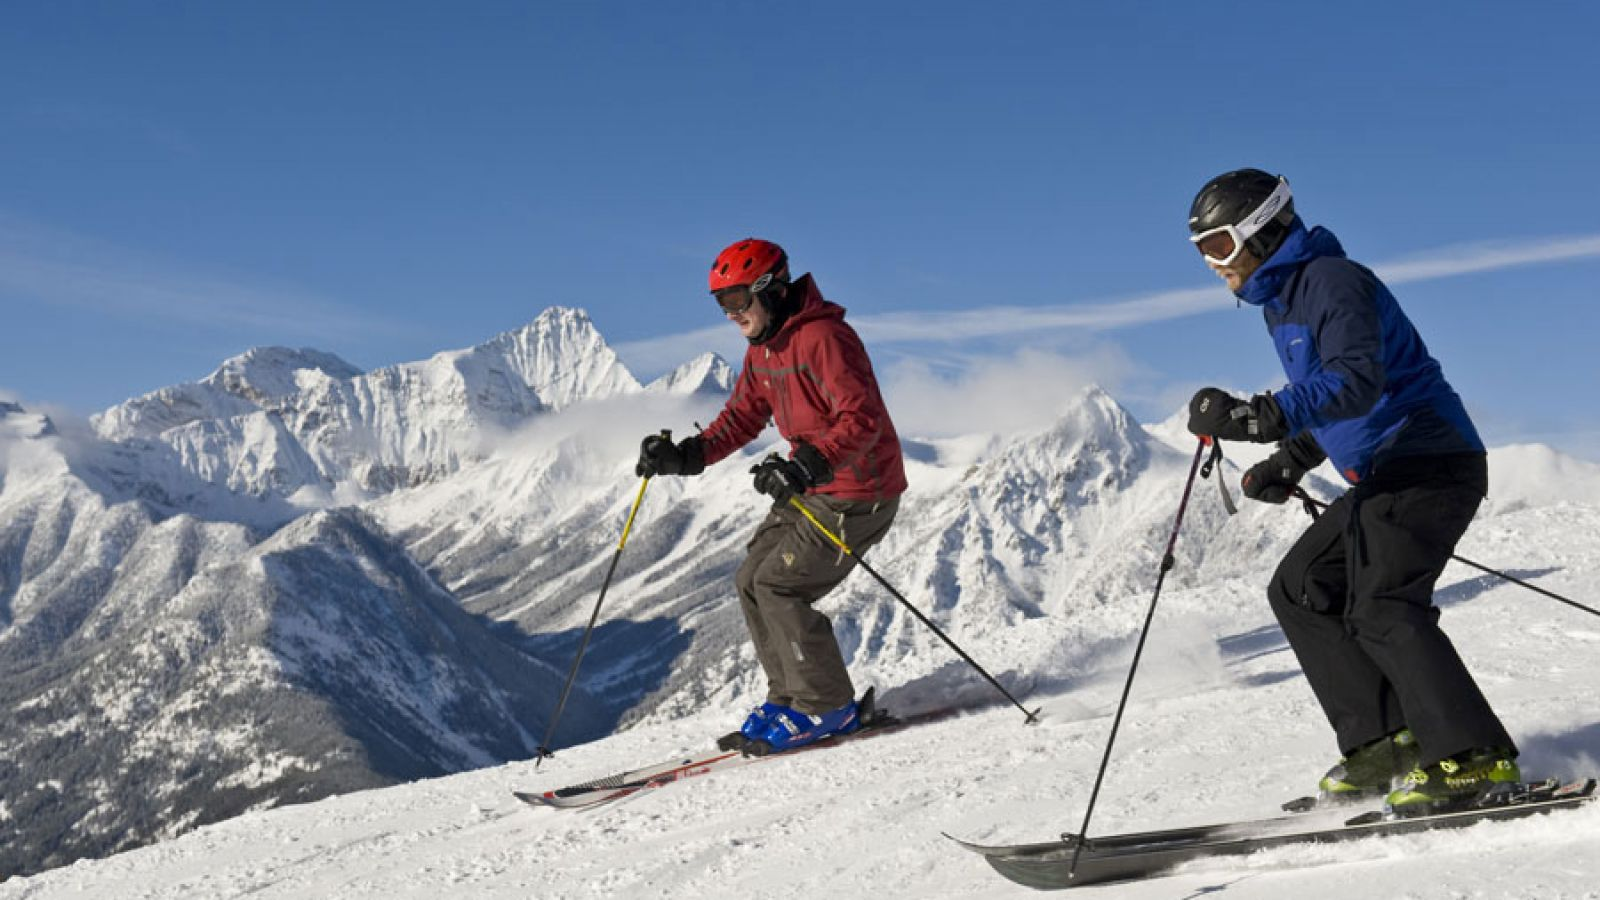 Panorma Mountain Resort offers some of North America's best skiing.